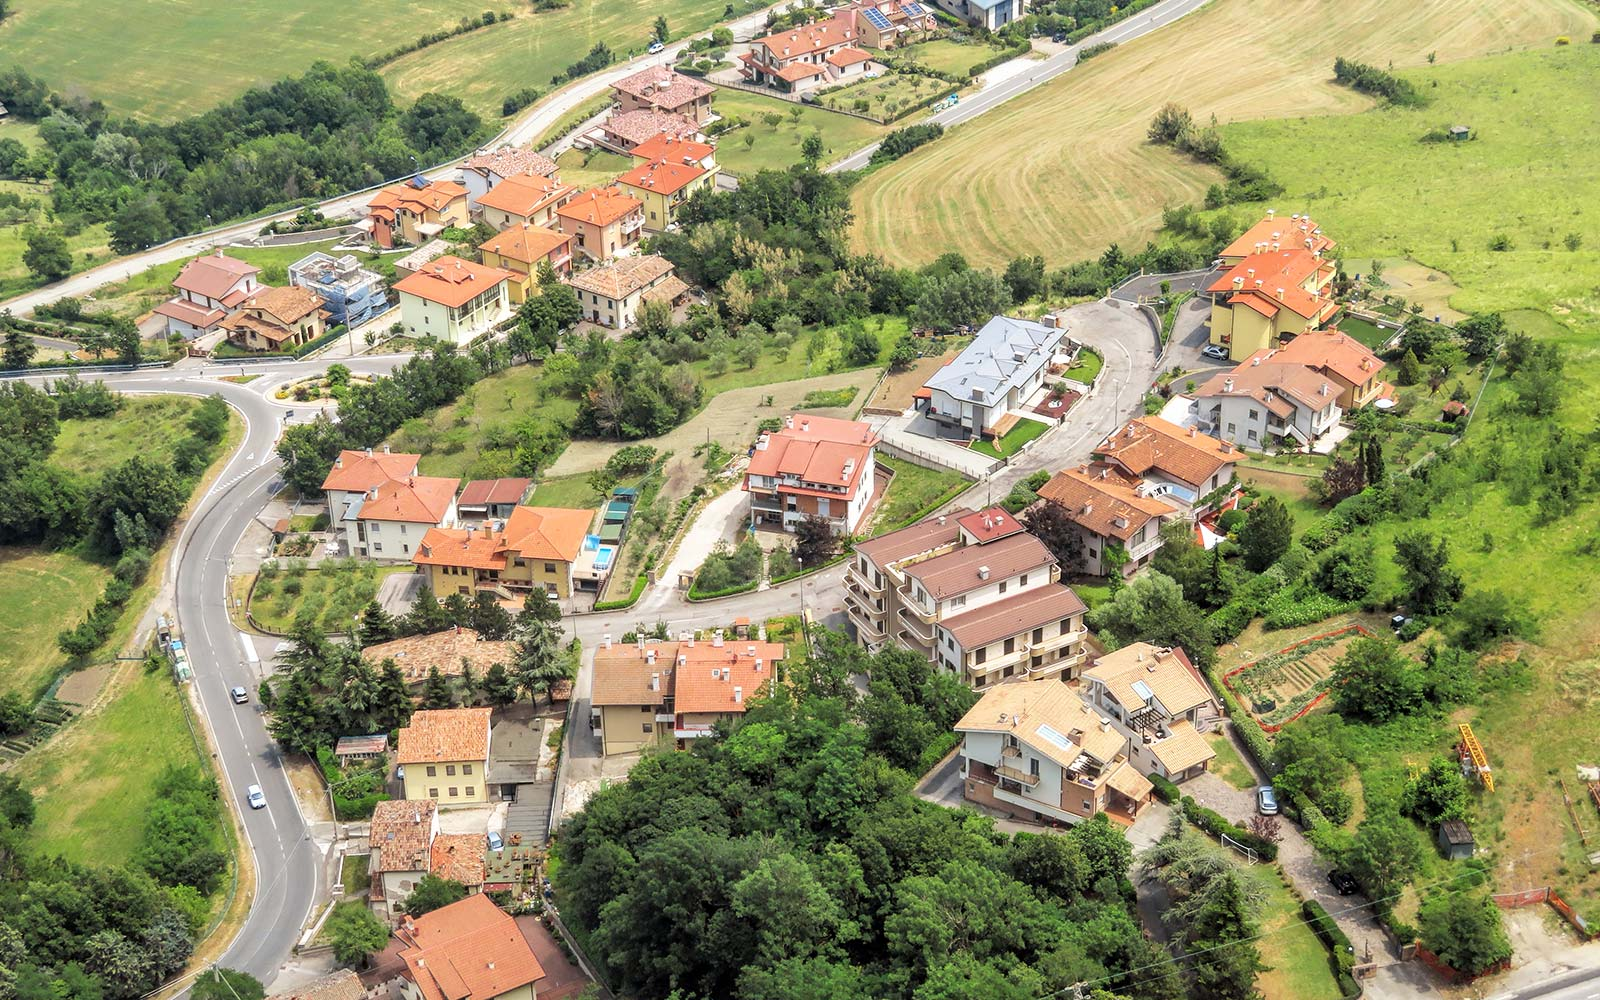 View of the village from the fortress of San Marino